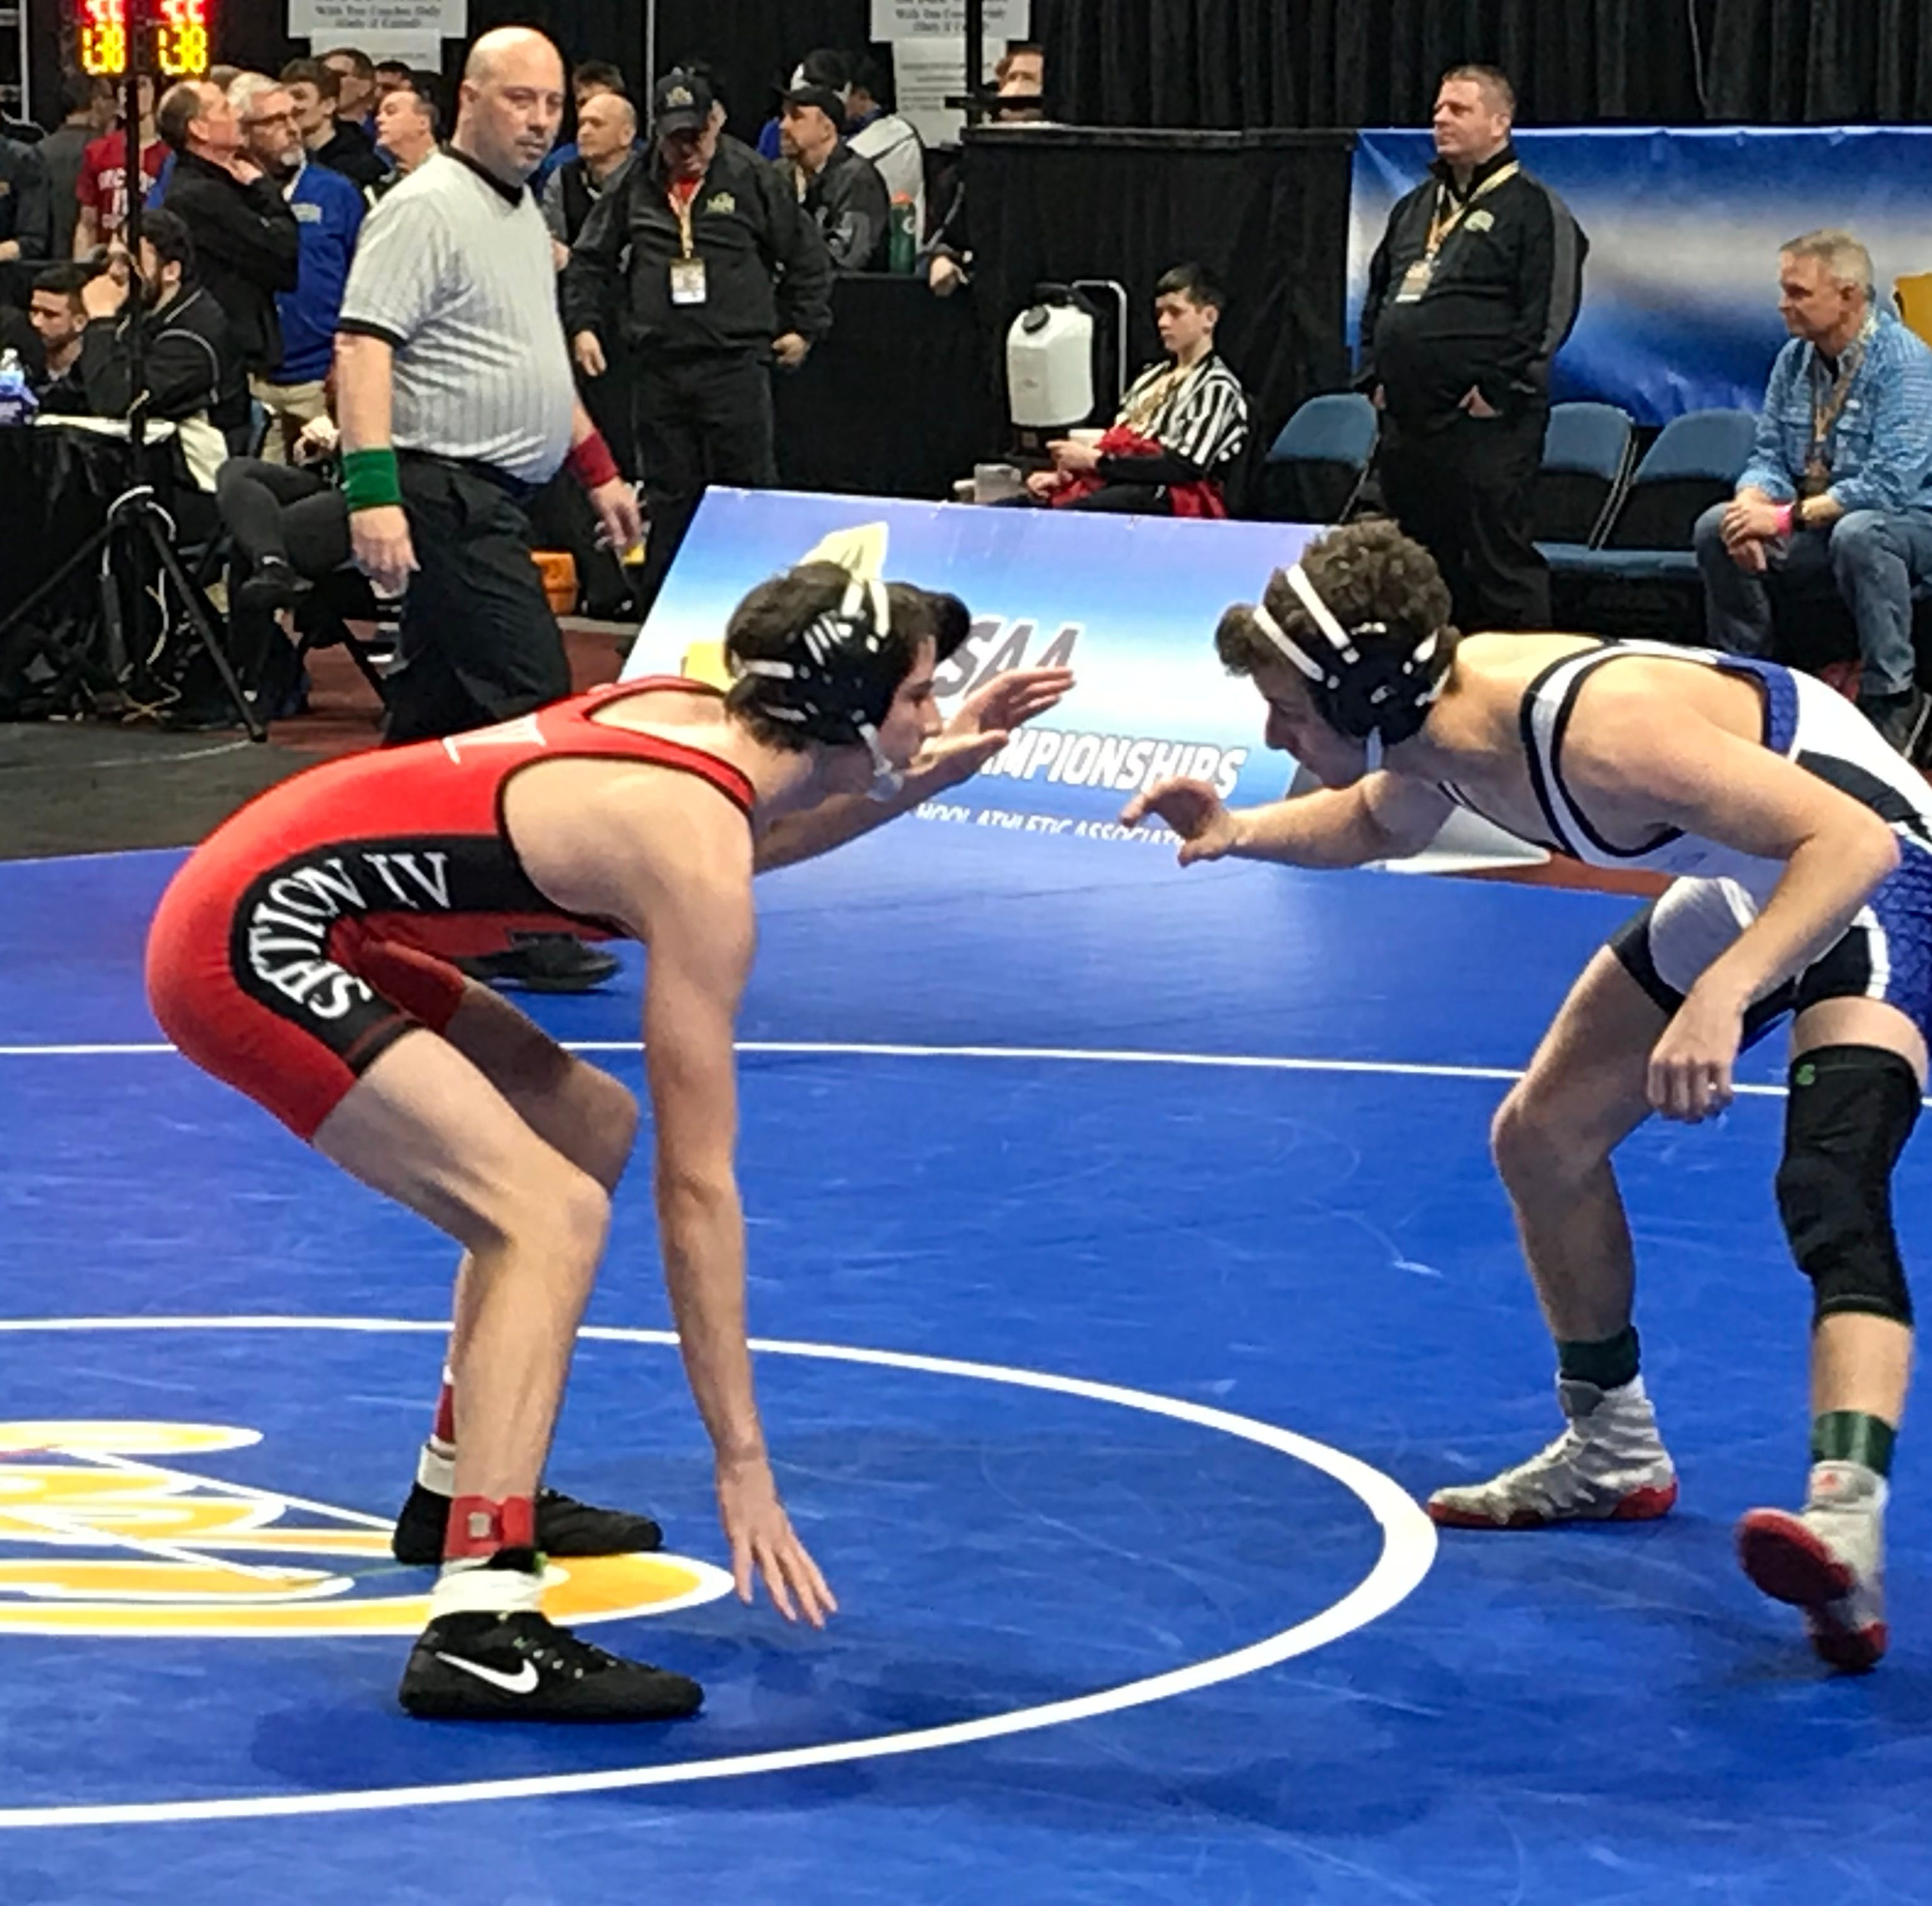 H.S. Wrestling: Section 4 advances 12 into D-II semifinals